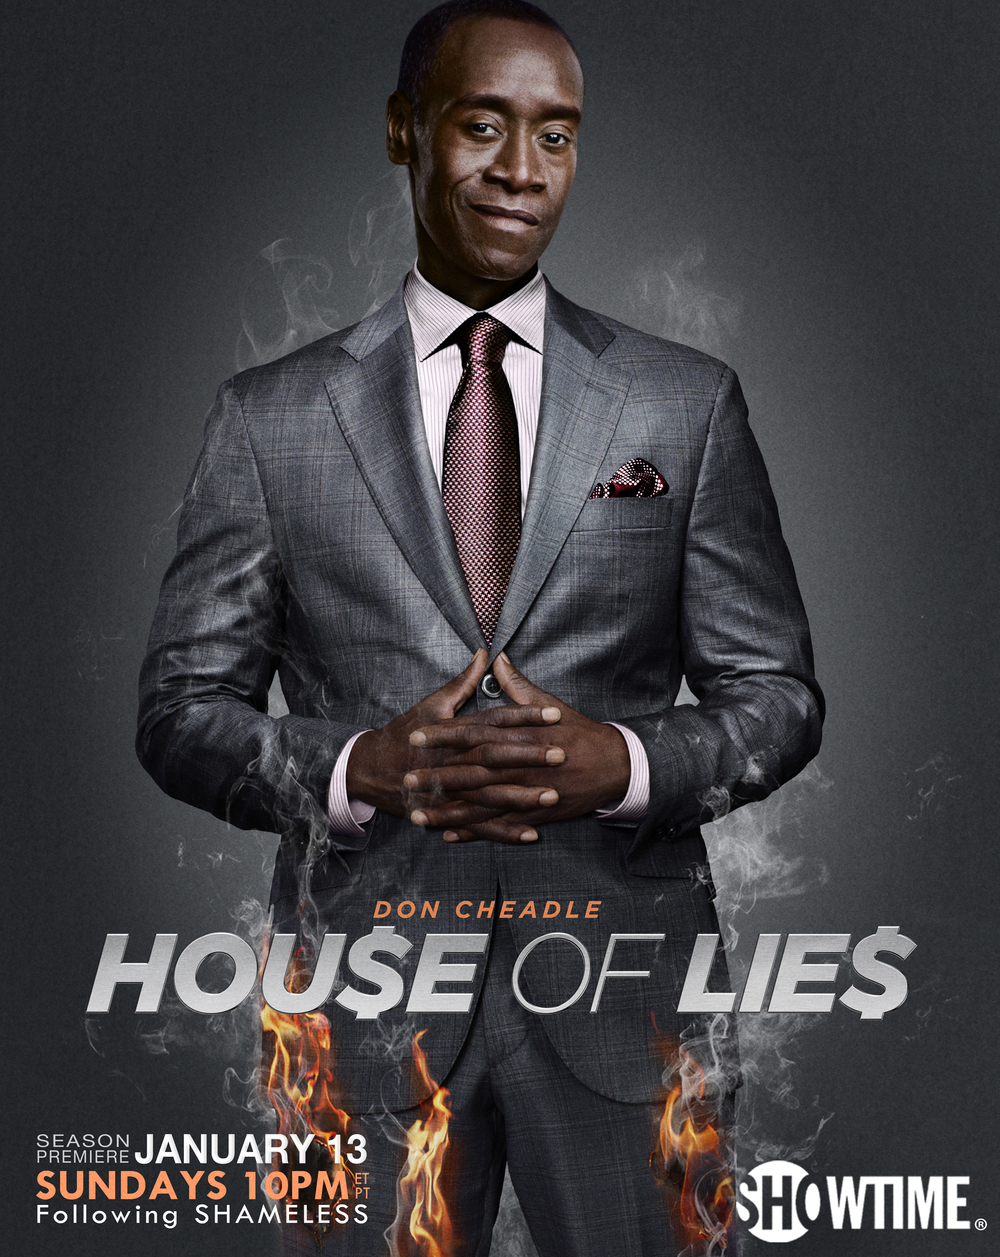 Don Cheadle - House of Lies Poster